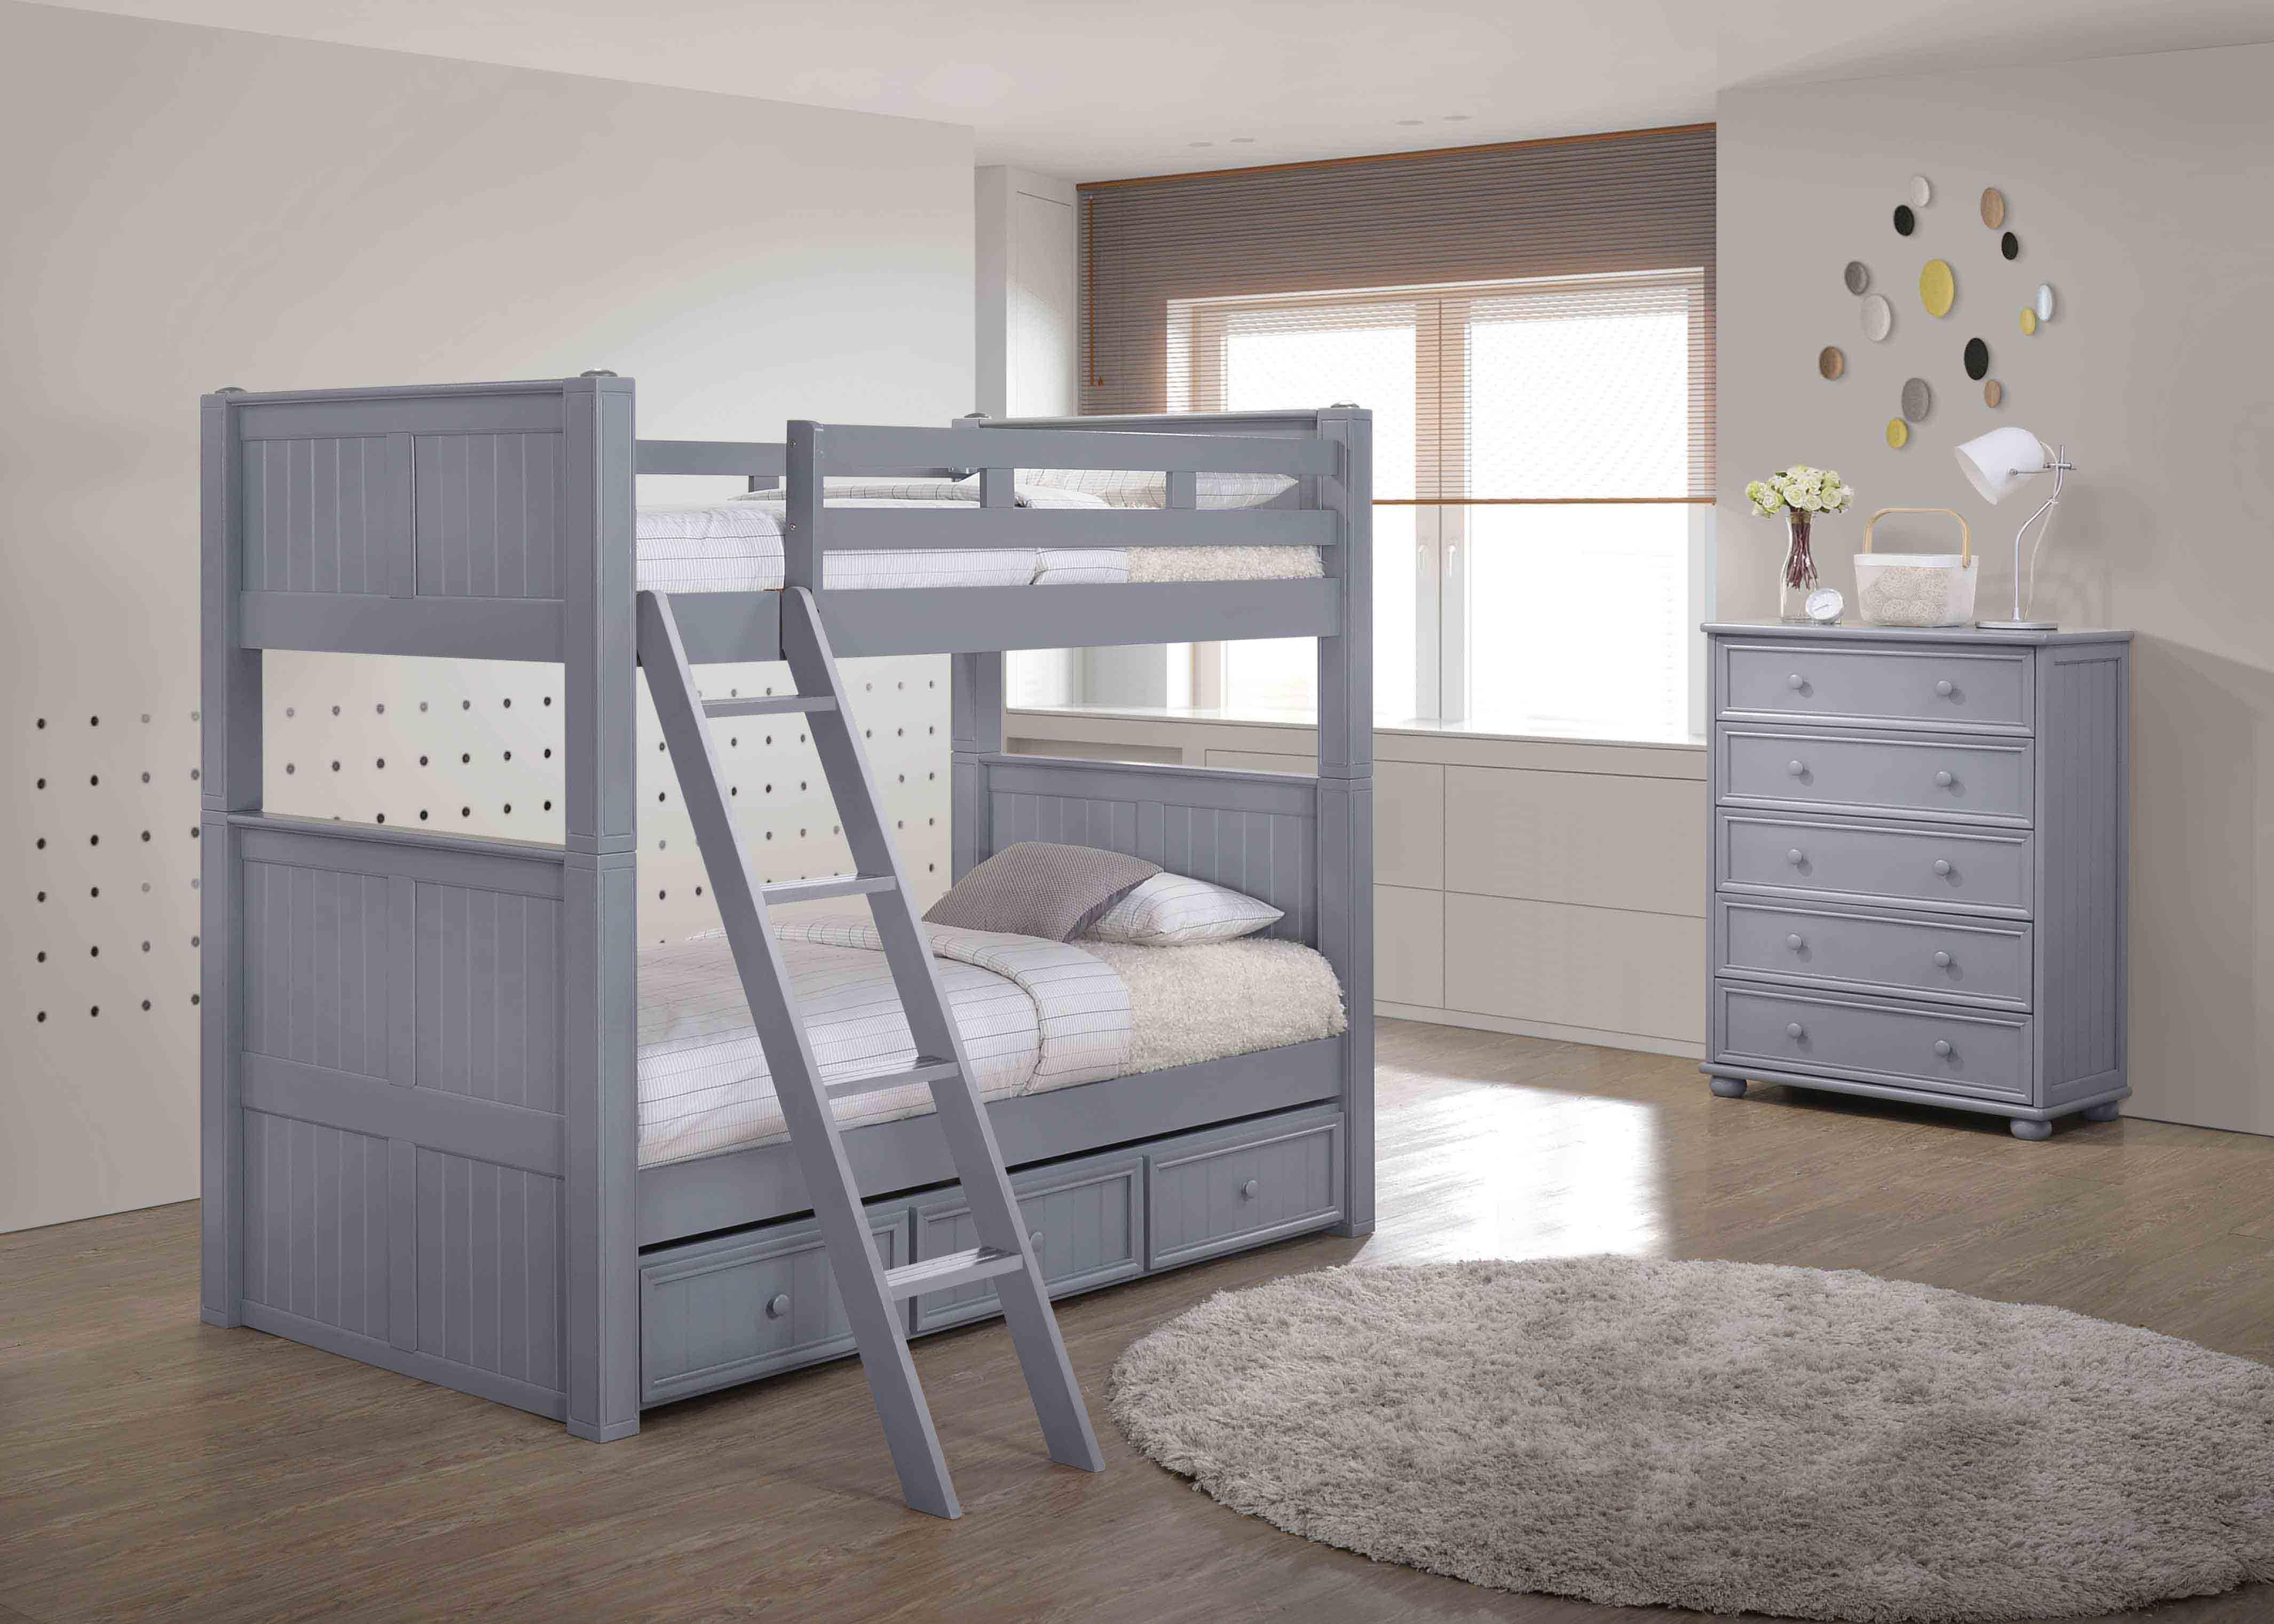 mattress twin how to amazing bunk flip bed size